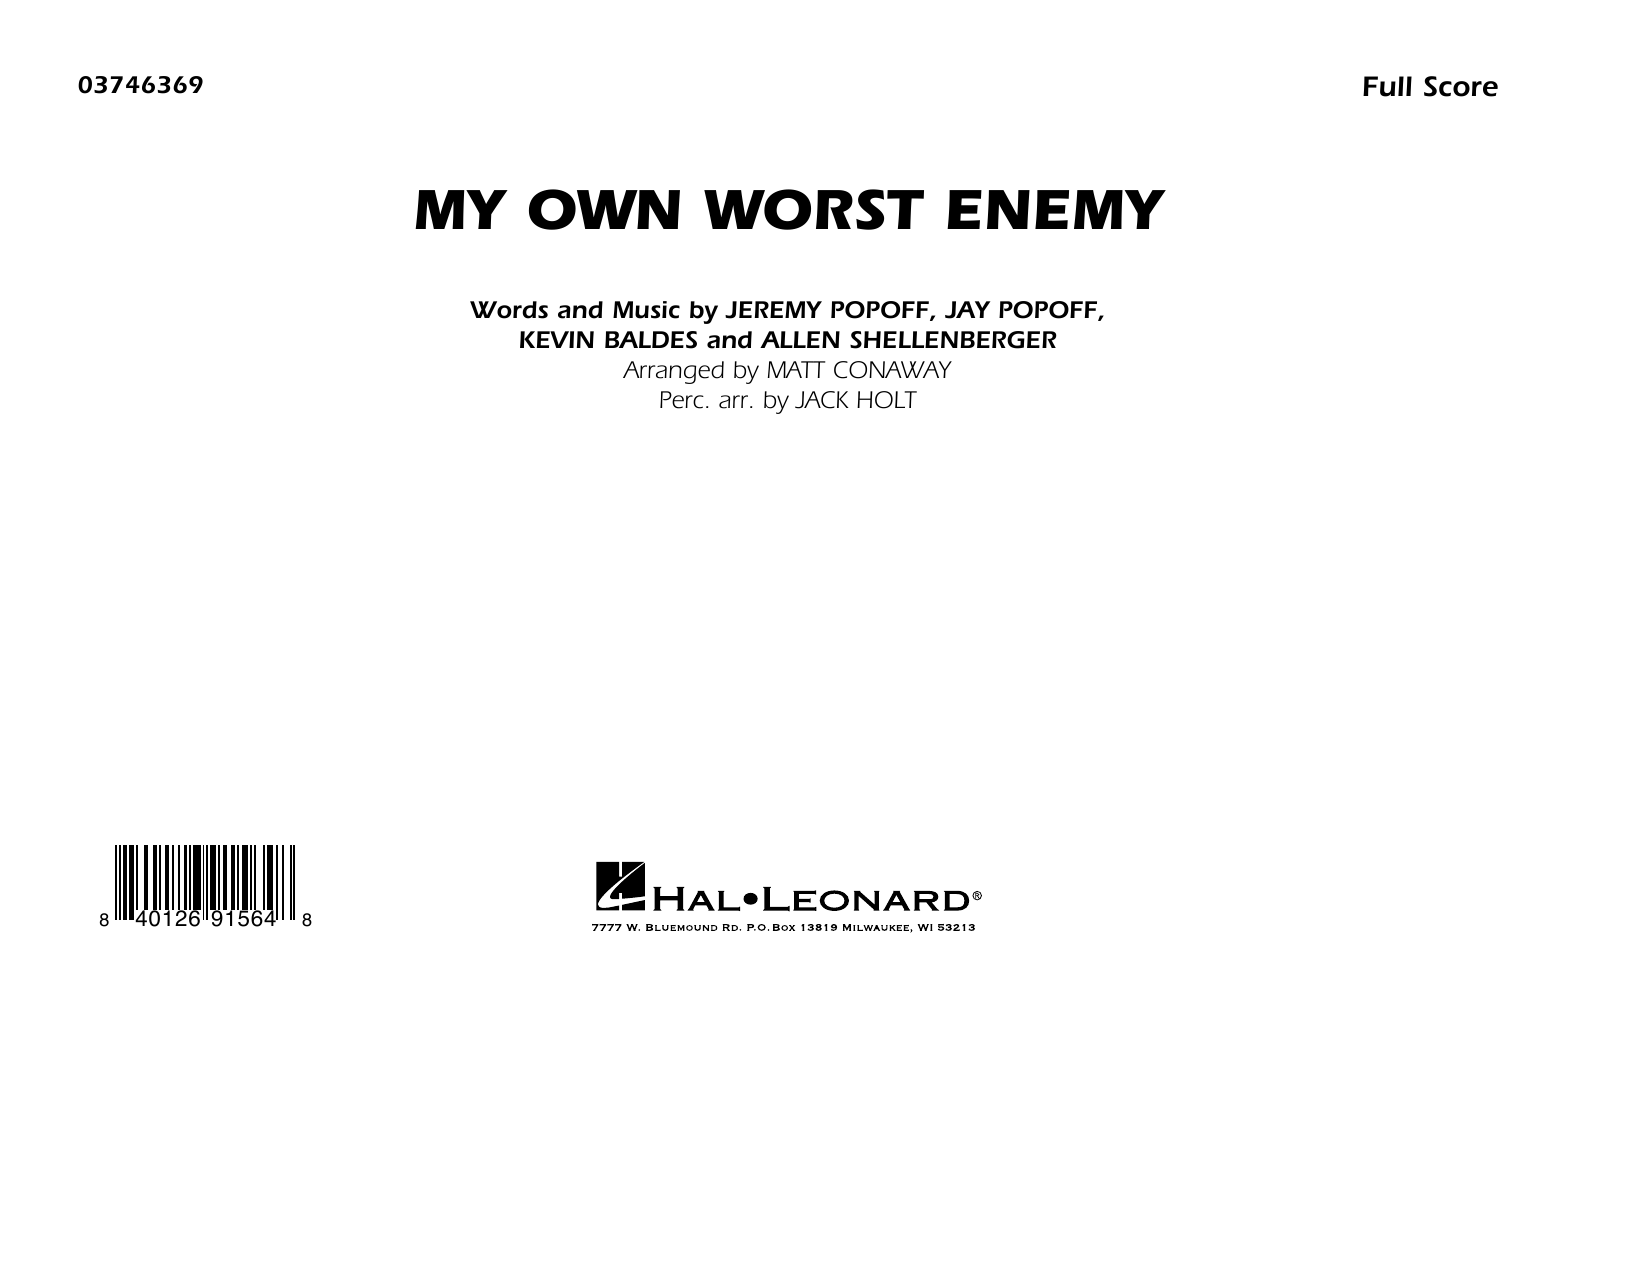 My Own Worst Enemy (arr. Matt Conaway) - Conductor Score (Full Score) Sheet Music